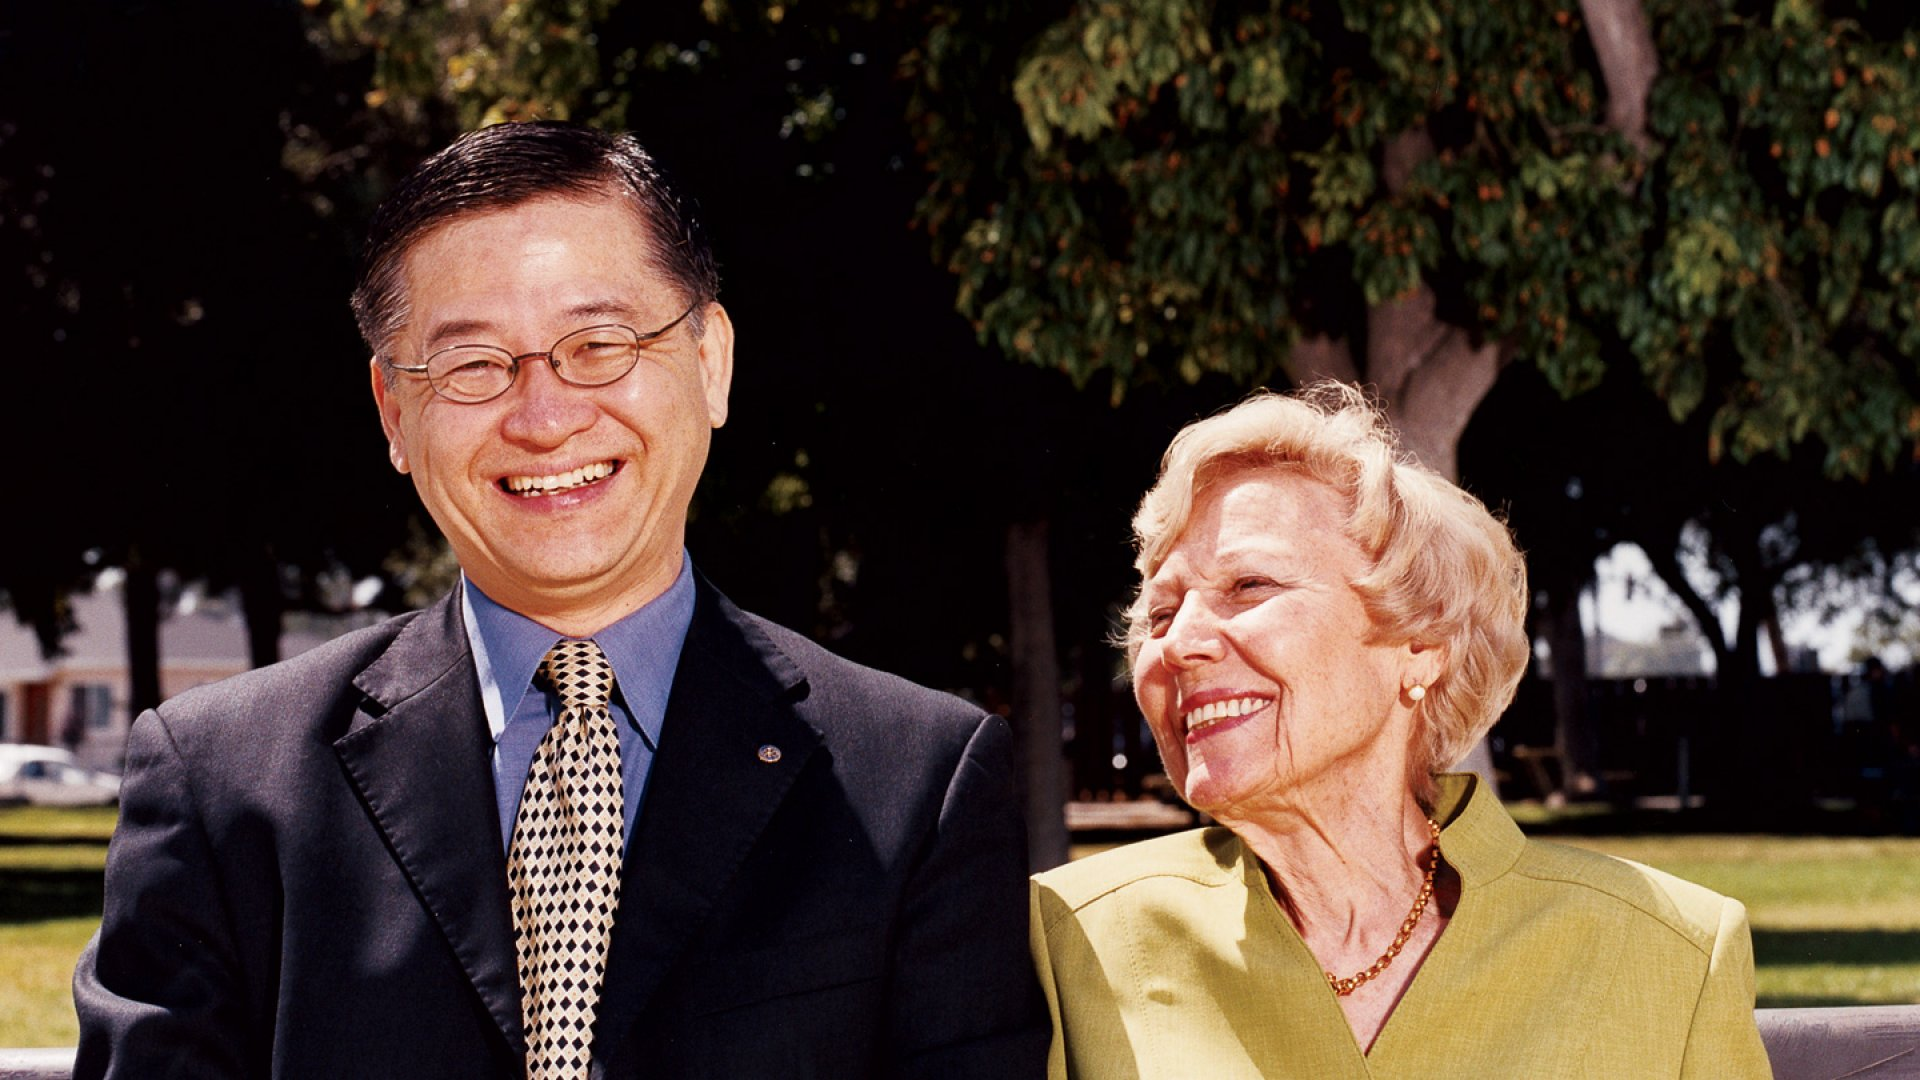 FELLOW TRAVELERS Chris Chen's all-american success story wouldn't have been possible without Helene DeGroodt and her late husband, Franklin.